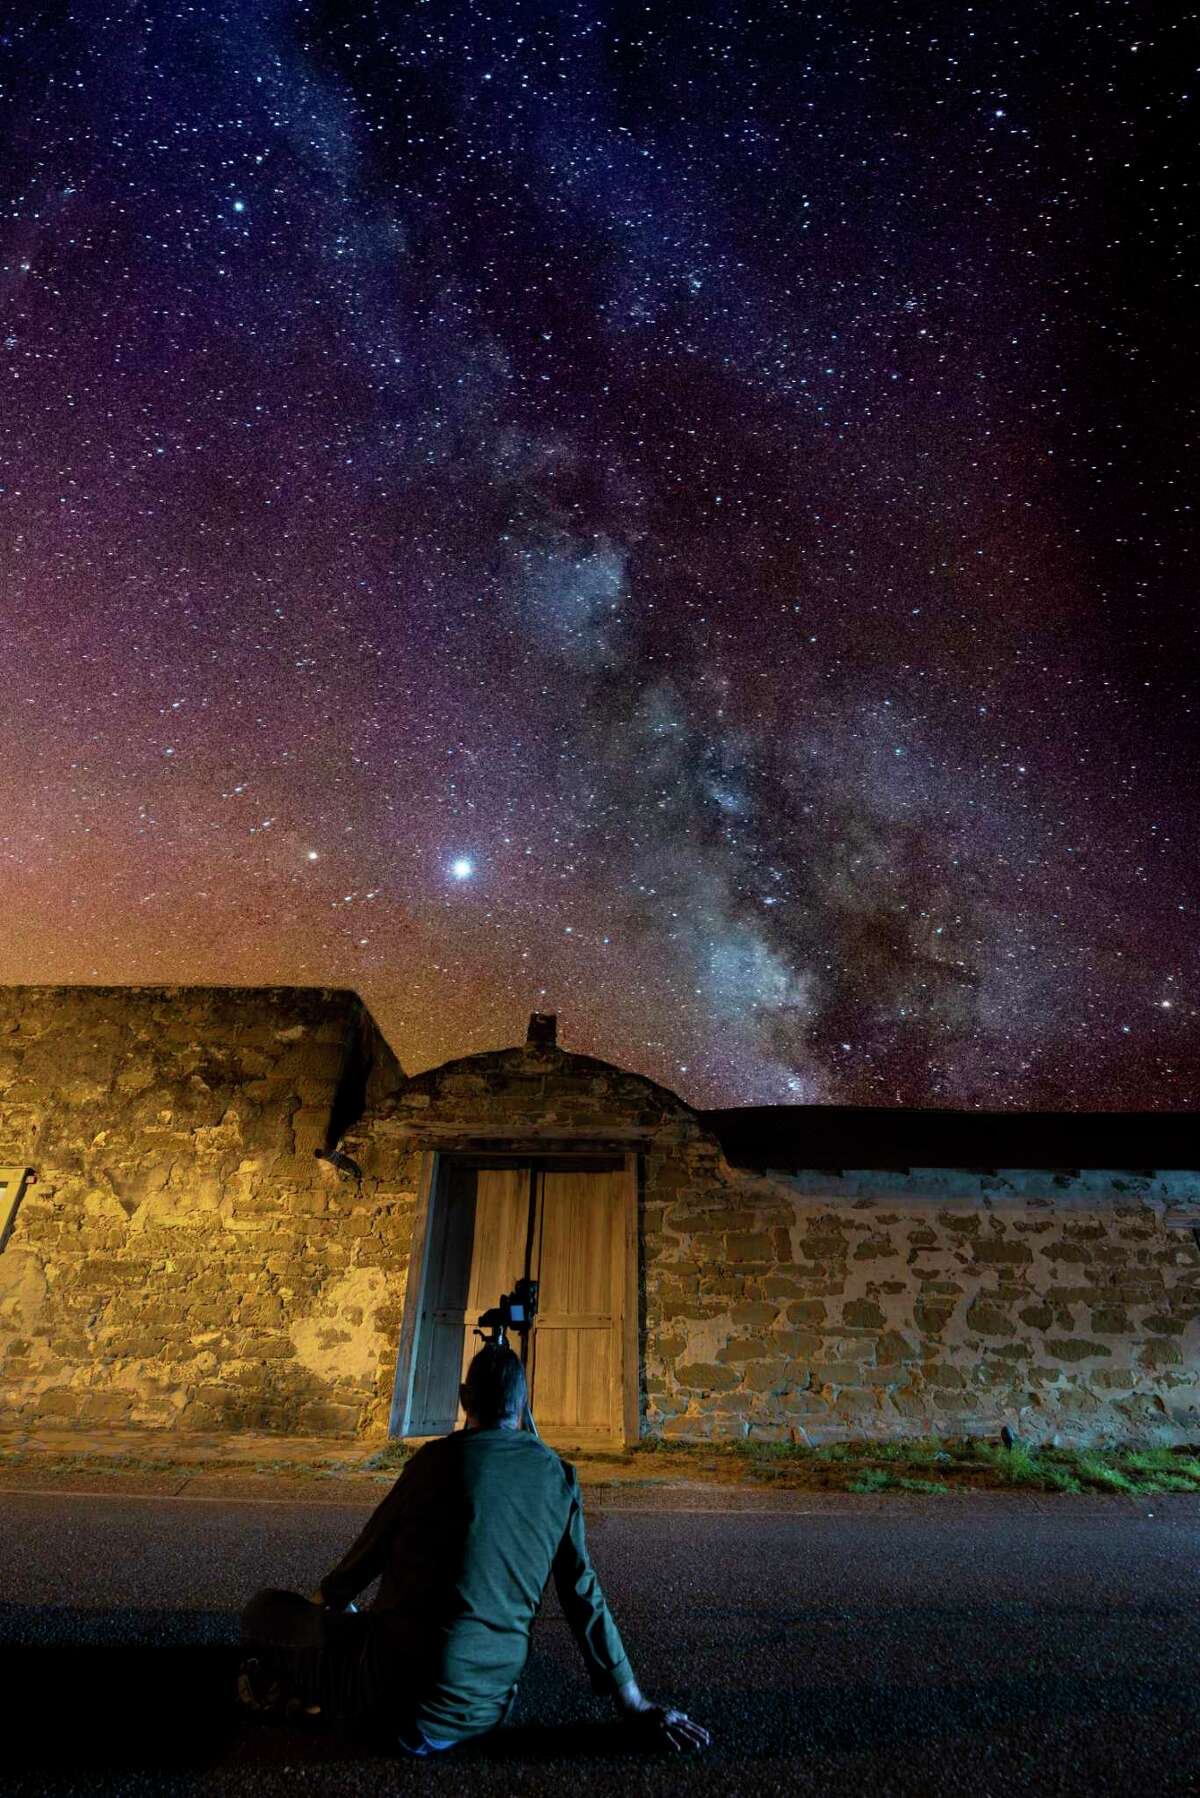 A photo illustration pictures longtime LMT photographer Cuate Santos viewing the night sky, with the visible milky way actually a previous image Santos took in San Ygnacio.